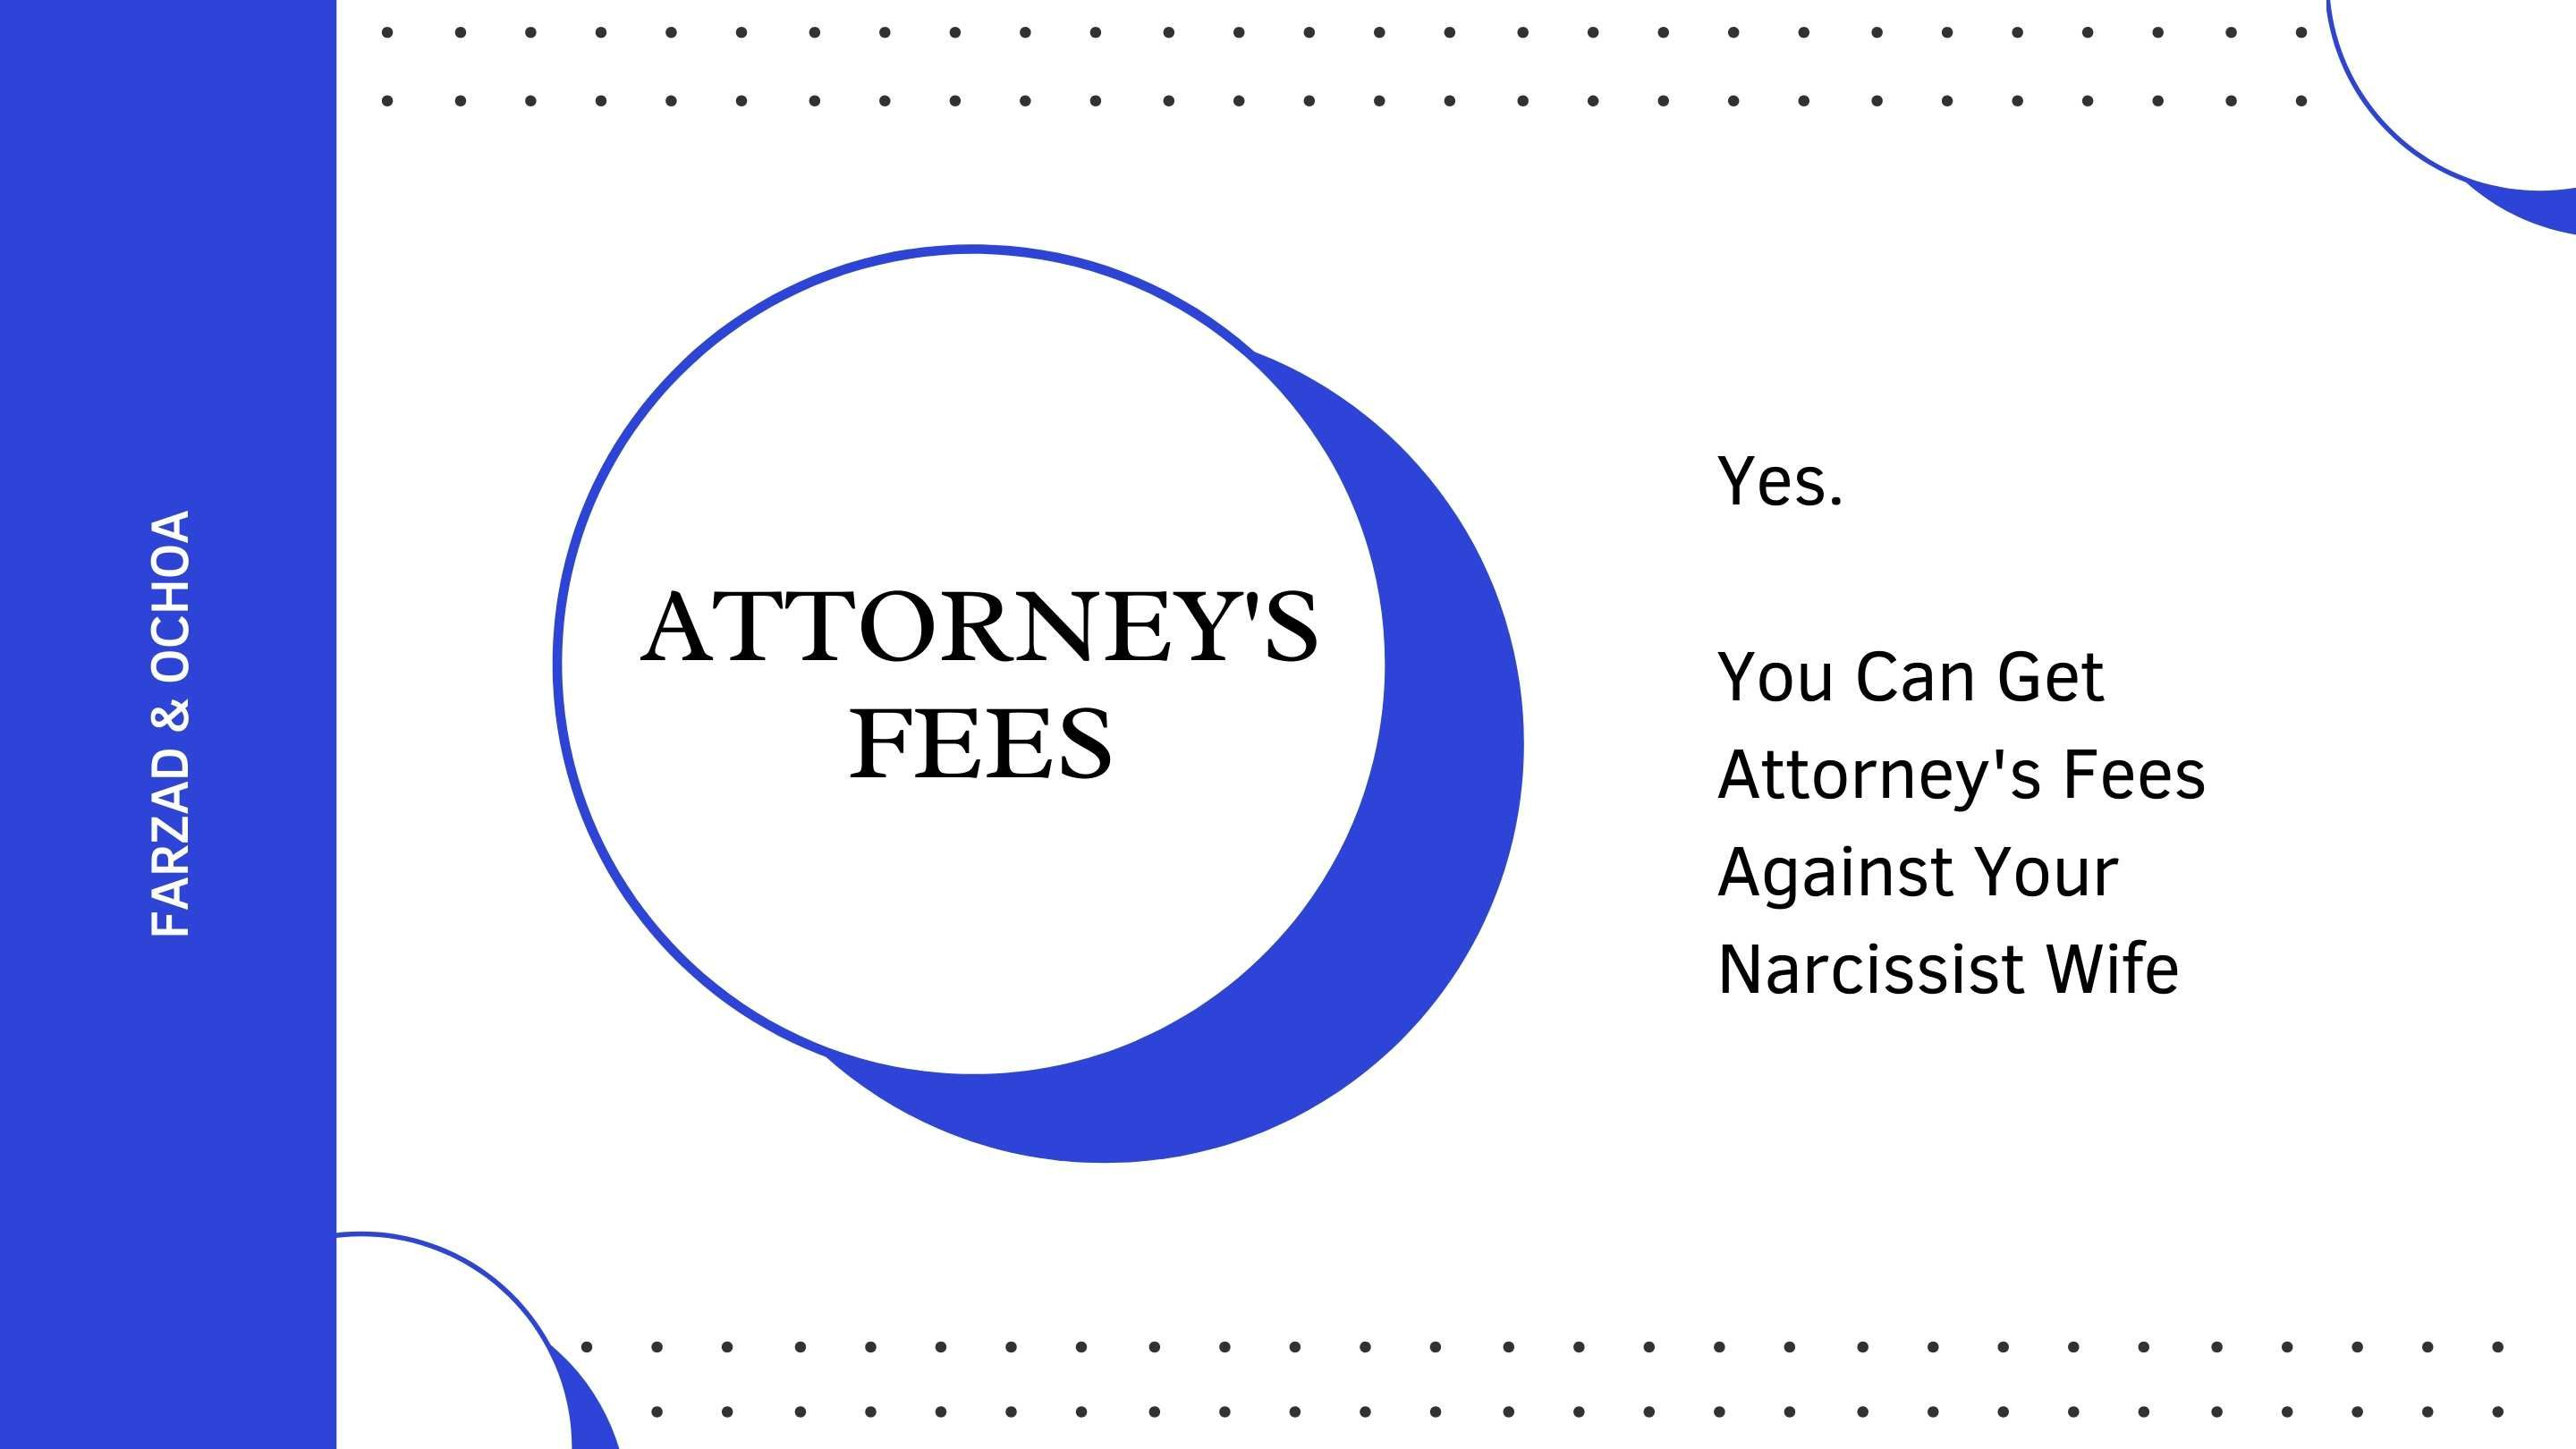 Blue and White rectangular box. Words attorney's fees and yes, you can get attorney's fees against your narcissist wife